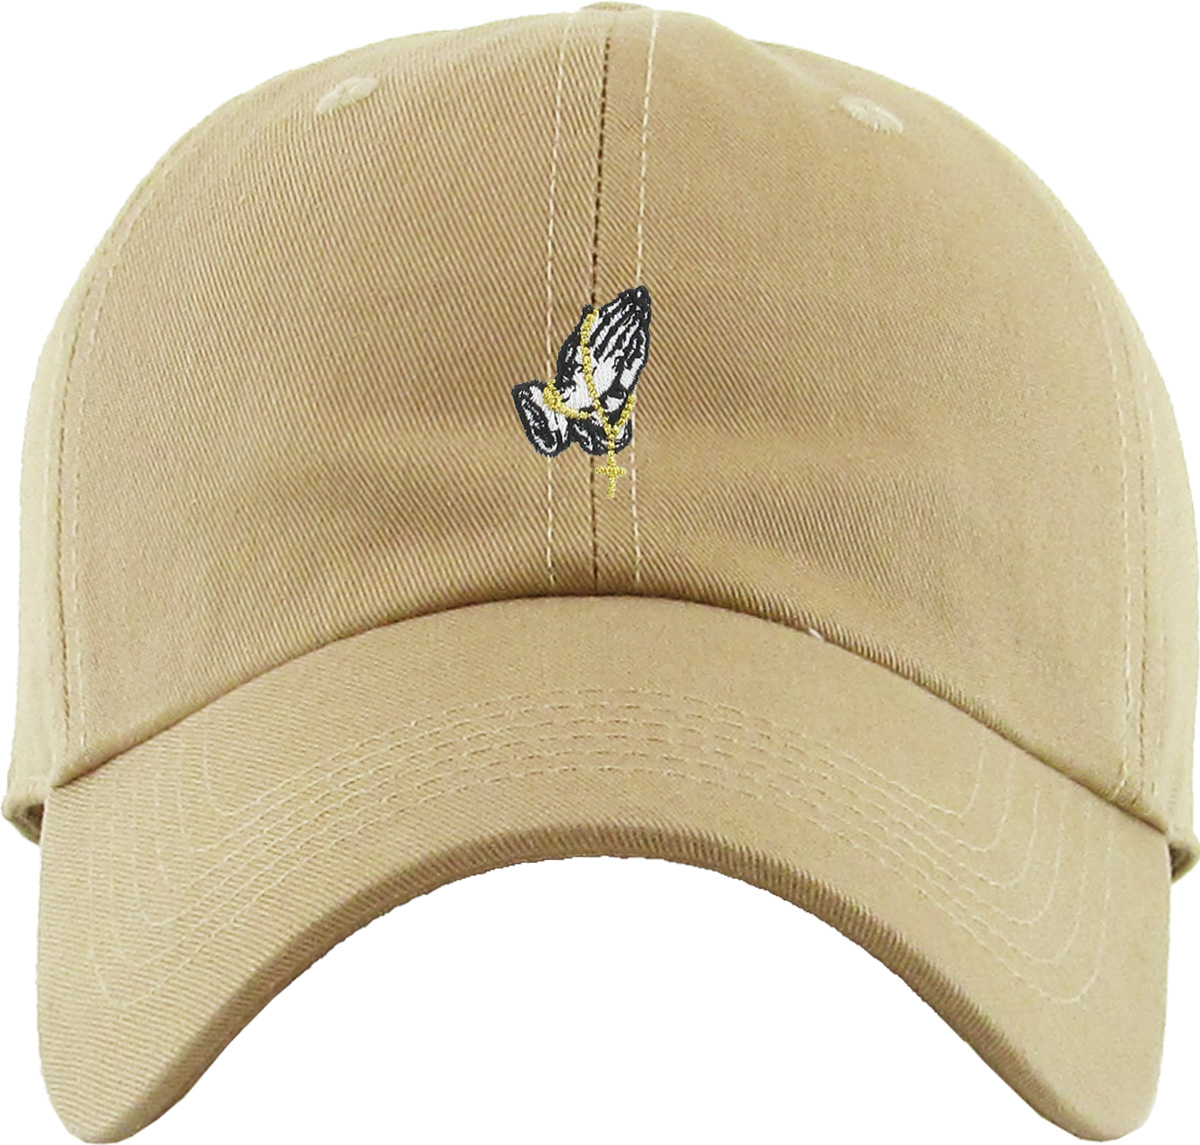 ef0a5ea8867a2 Praying Hands Rosary Khaki Dad Hat Baseball Cap Polo Style Adjustable  Flexfit Nike Adidas City Hunter - Walmart.com